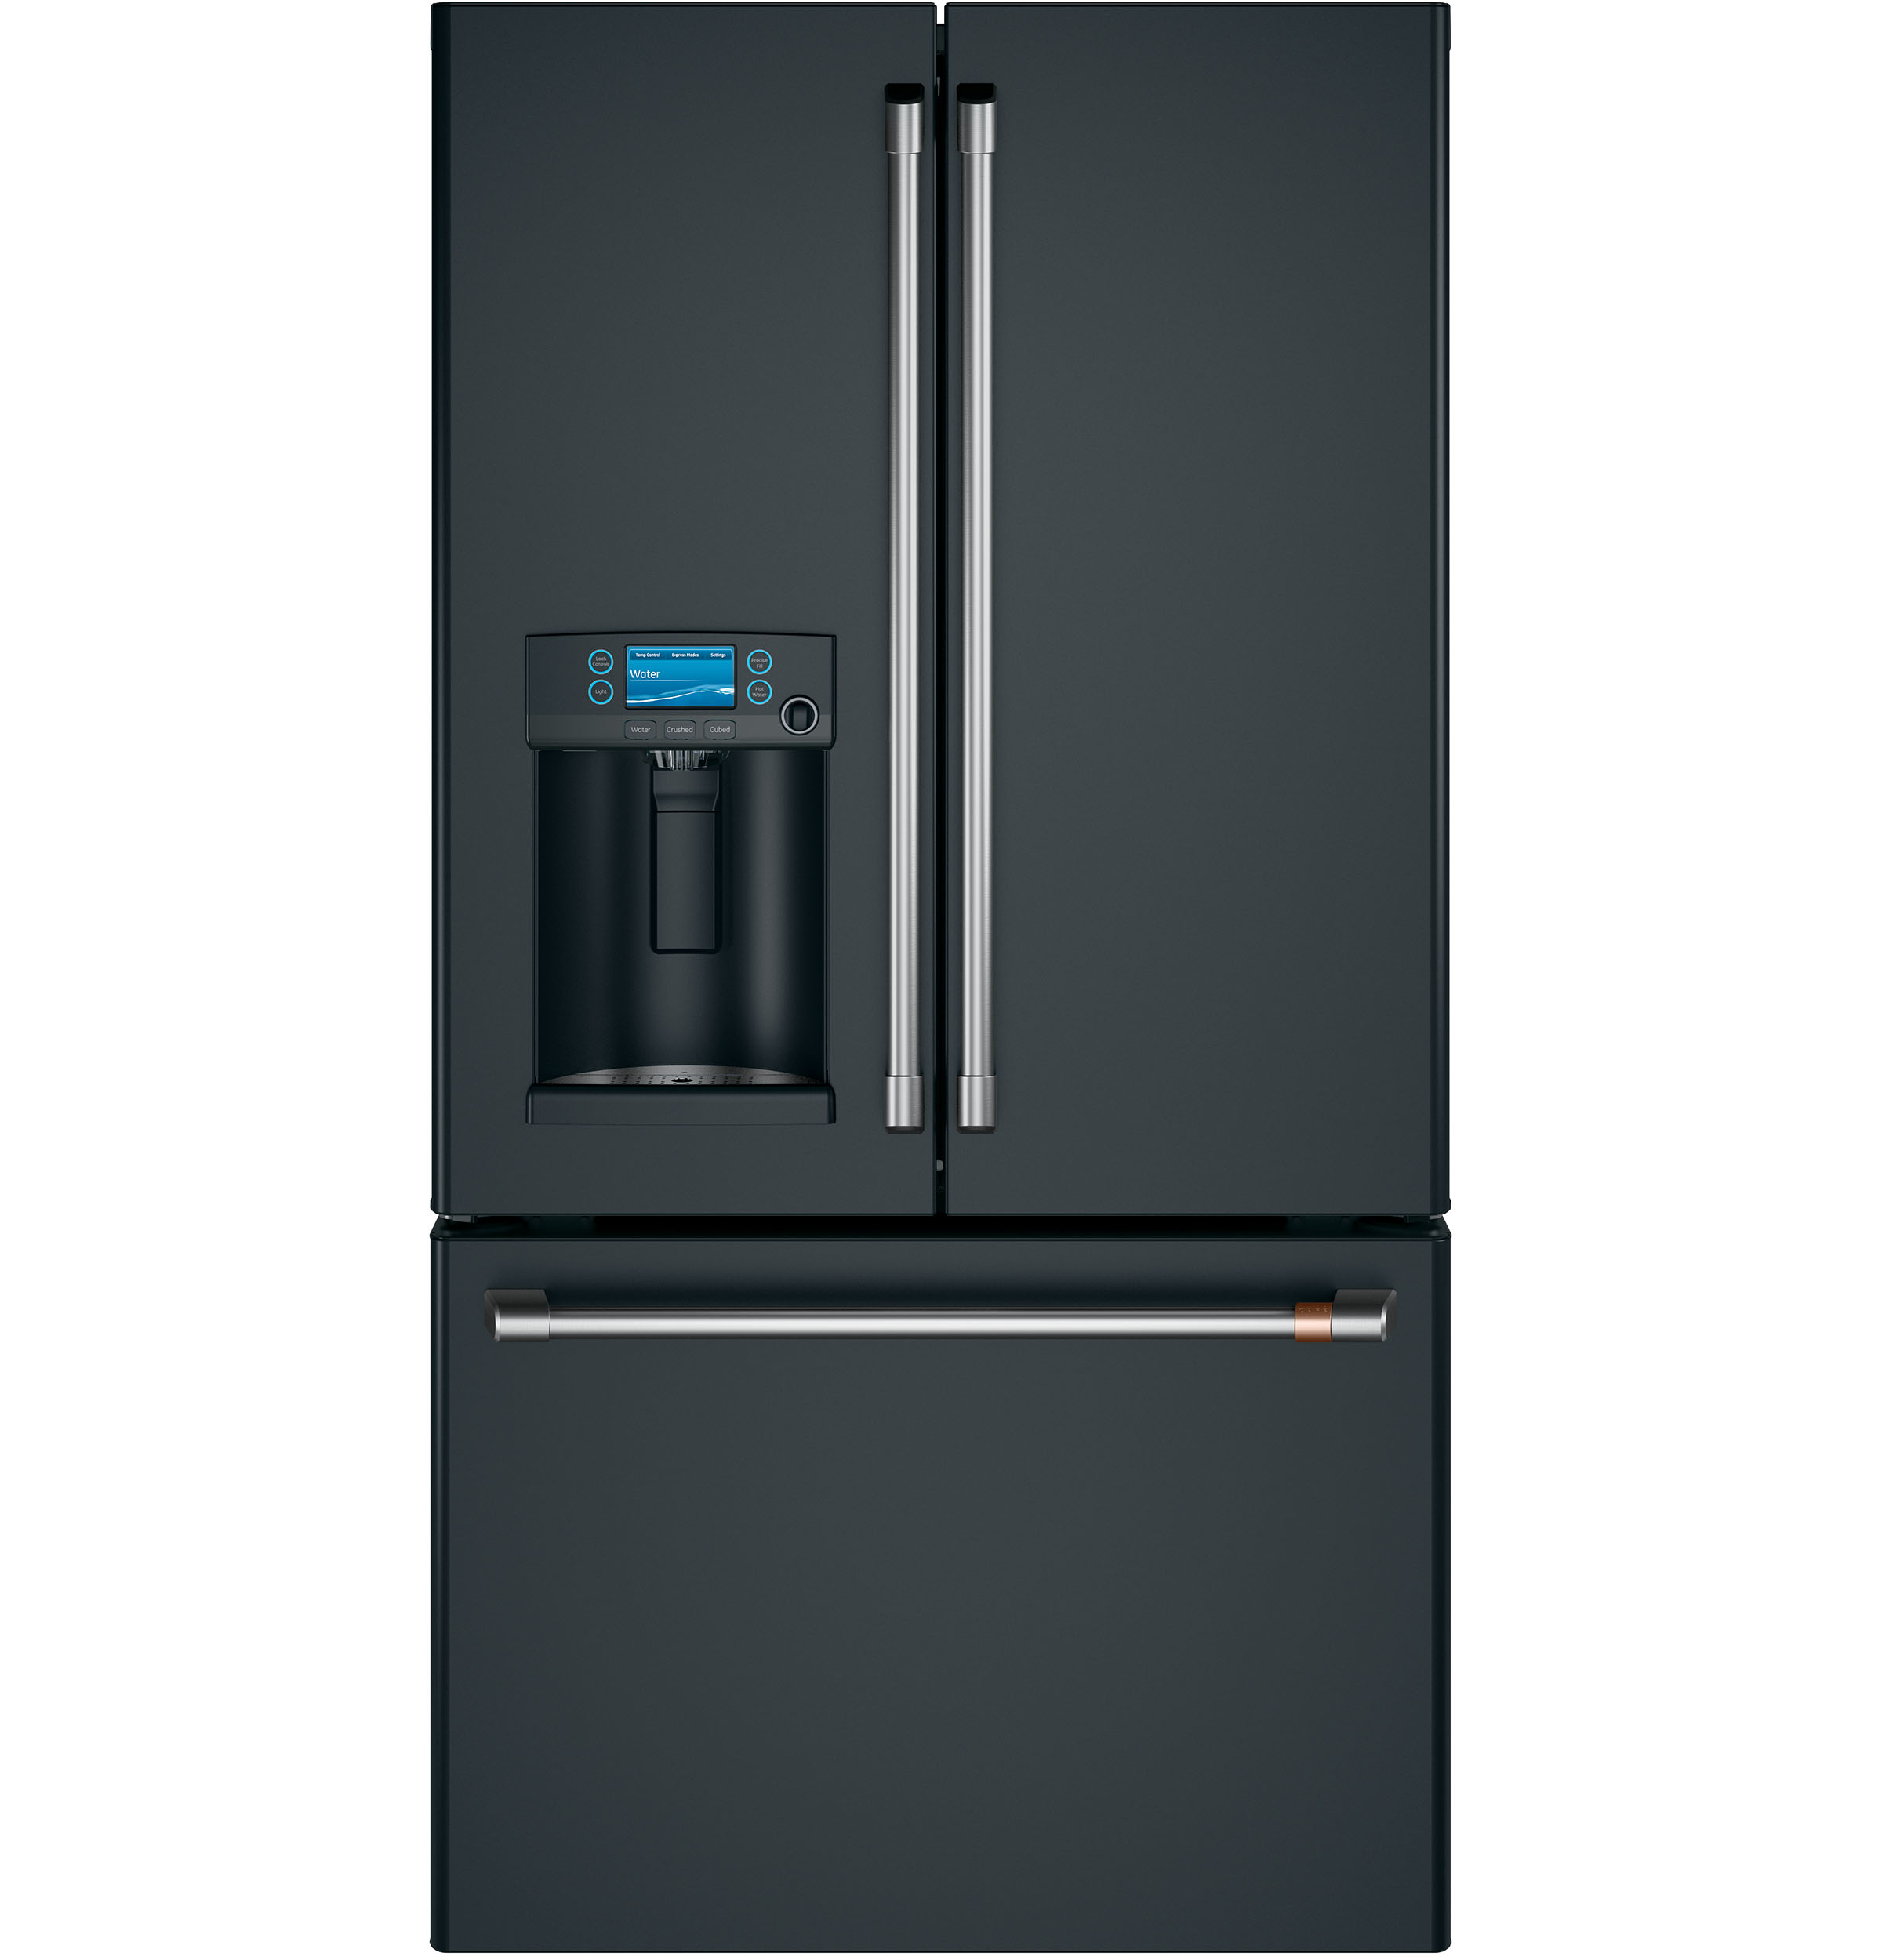 Cafe Café™ ENERGY STAR® 27.8 Cu. Ft. French-Door Refrigerator with Hot Water Dispenser